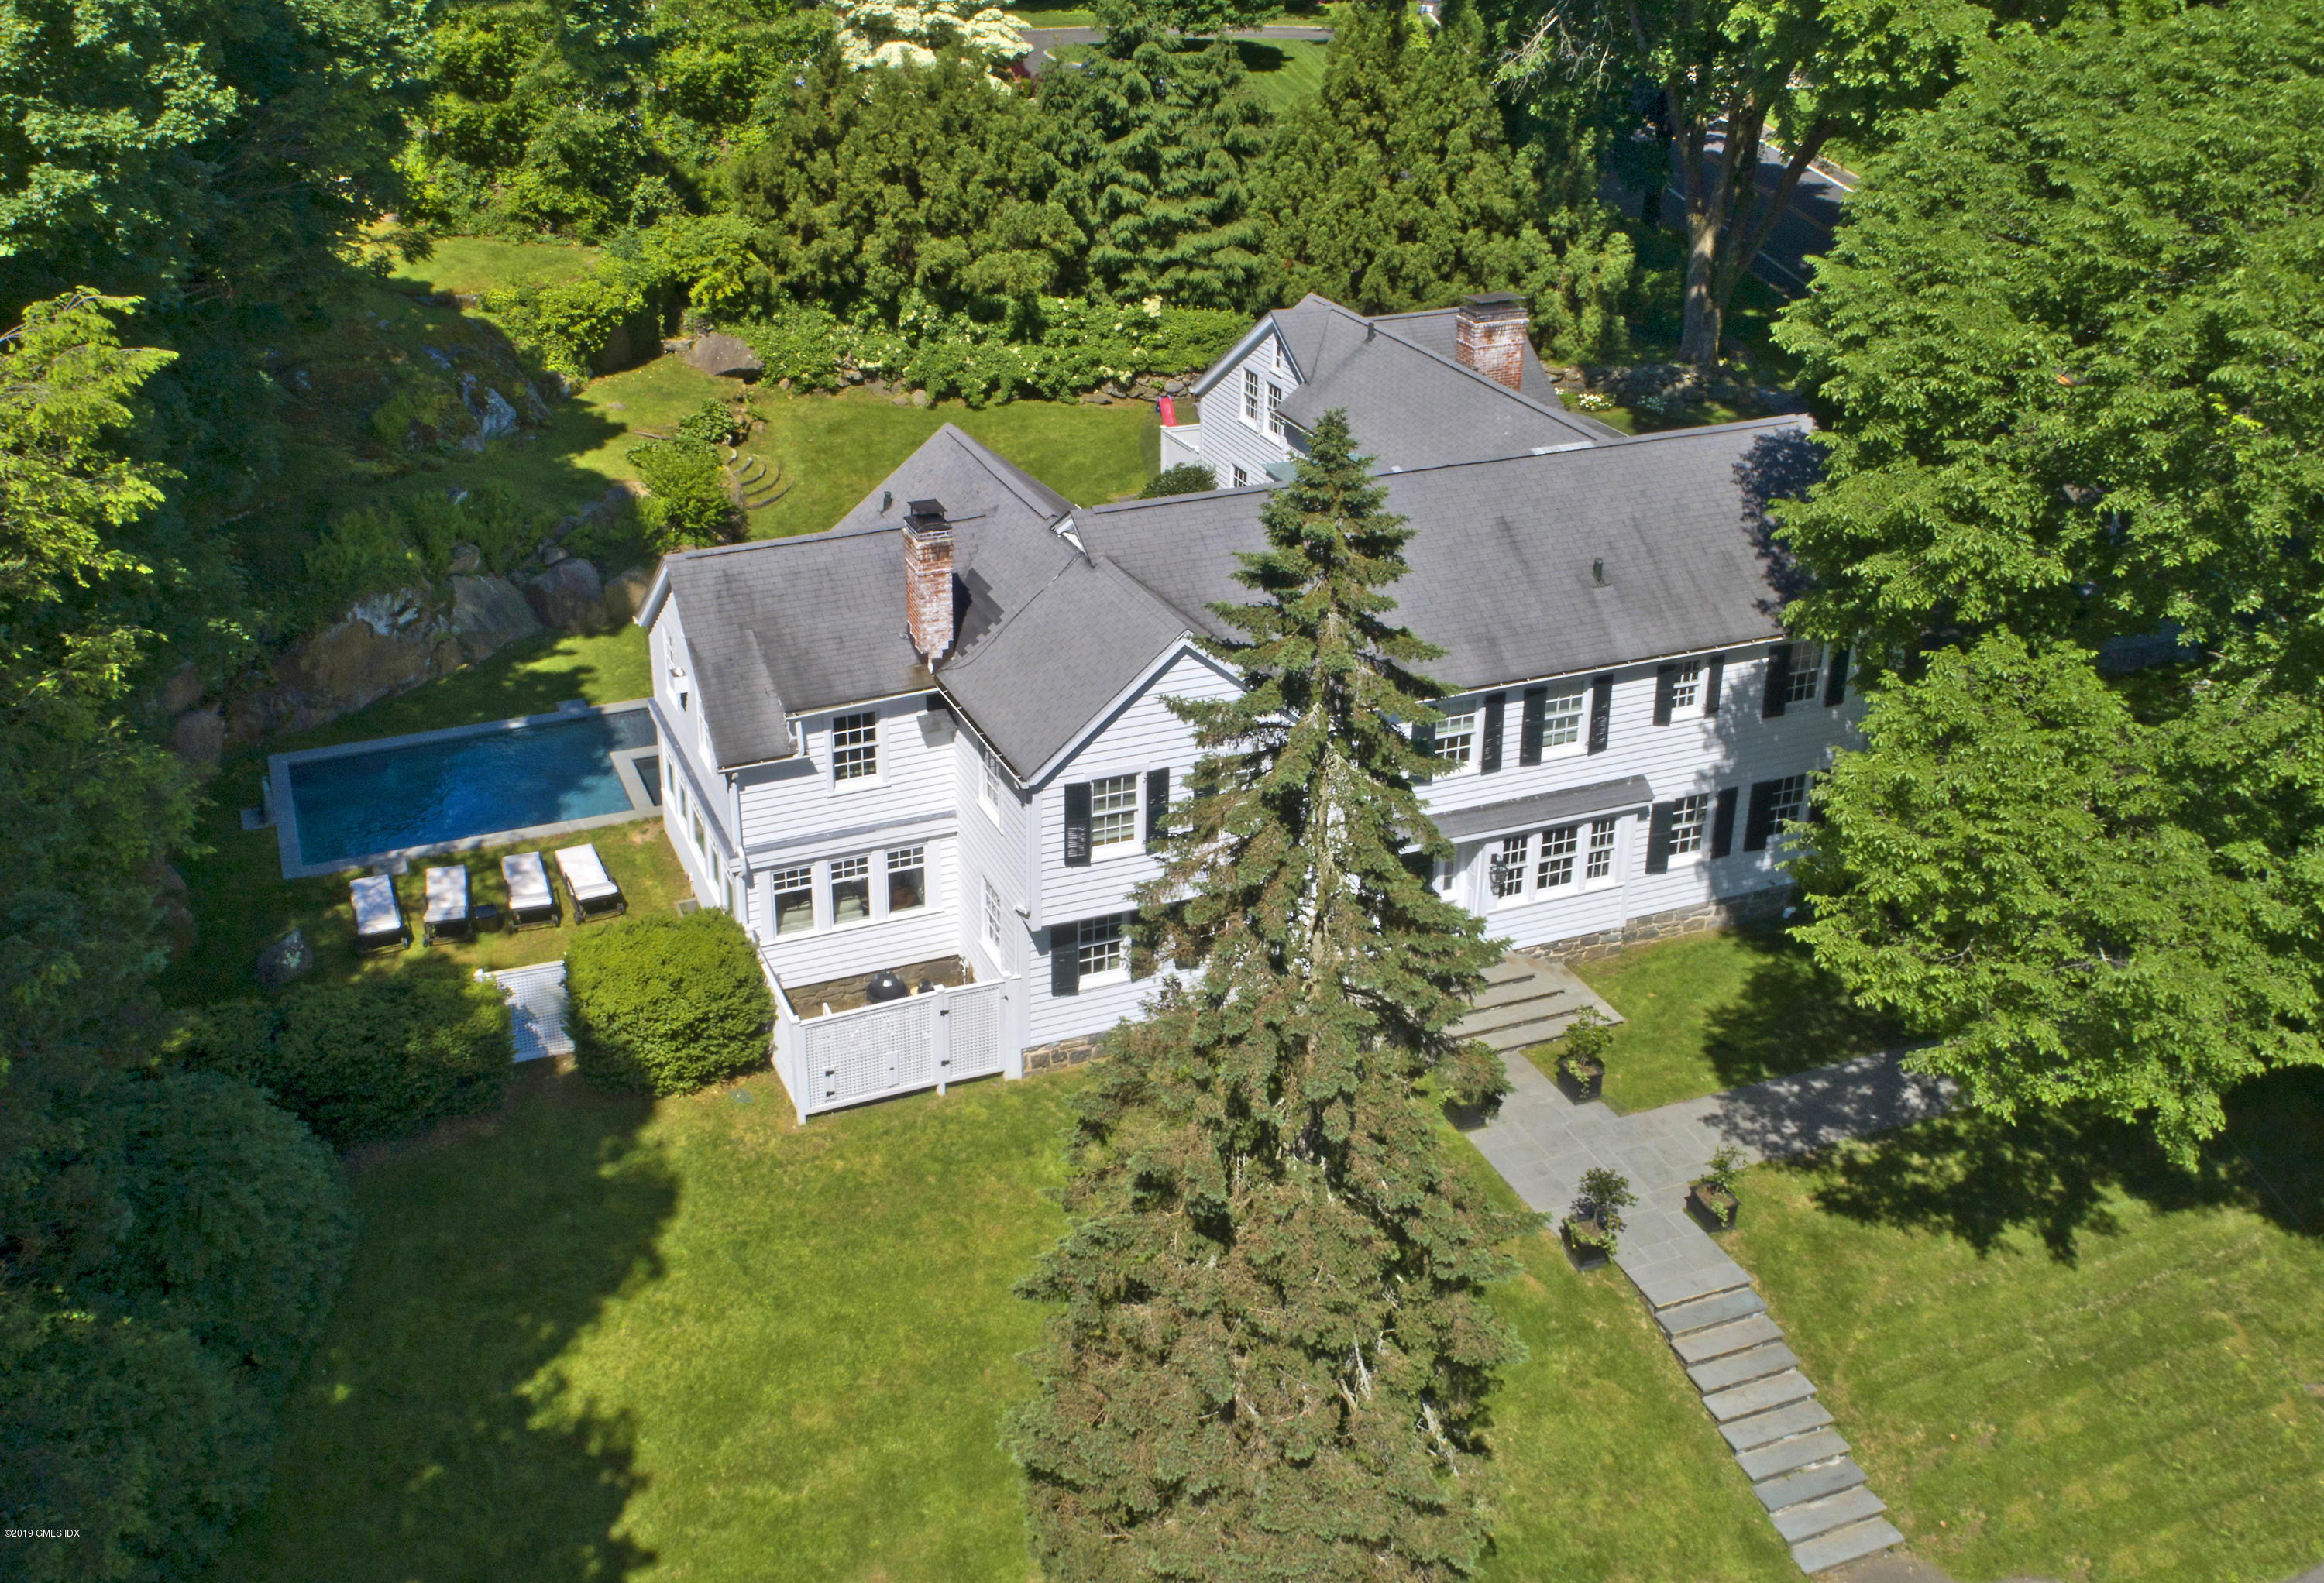 400 Maple Avenue, Greenwich, Connecticut 06830, 6 Bedrooms Bedrooms, ,4 BathroomsBathrooms,Single family,For sale,Maple,112240